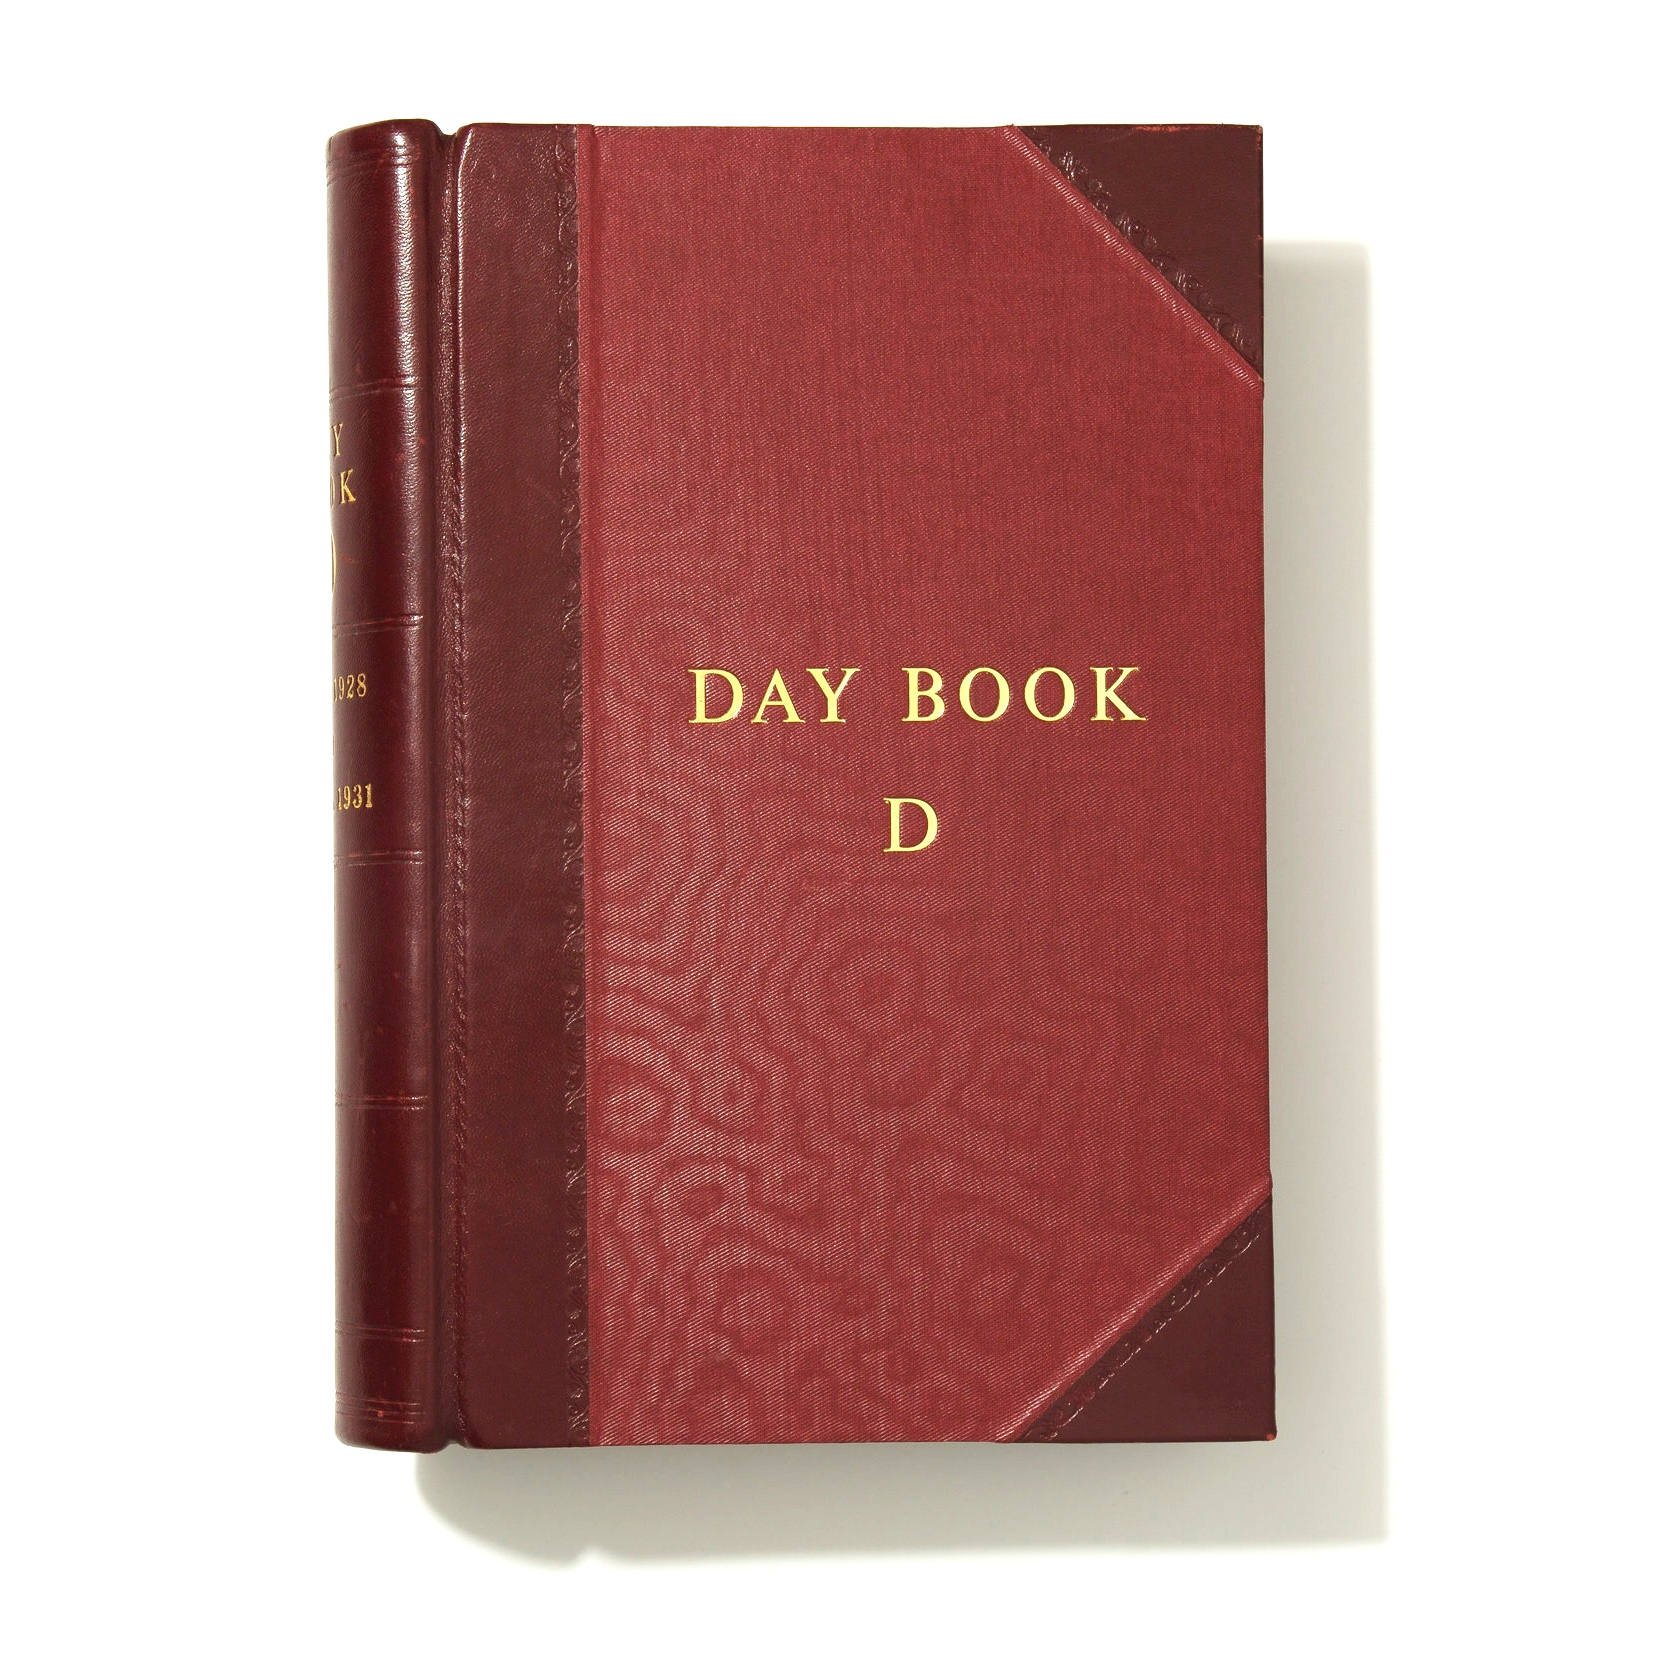 Backes & Strauss Daybook with diamond records